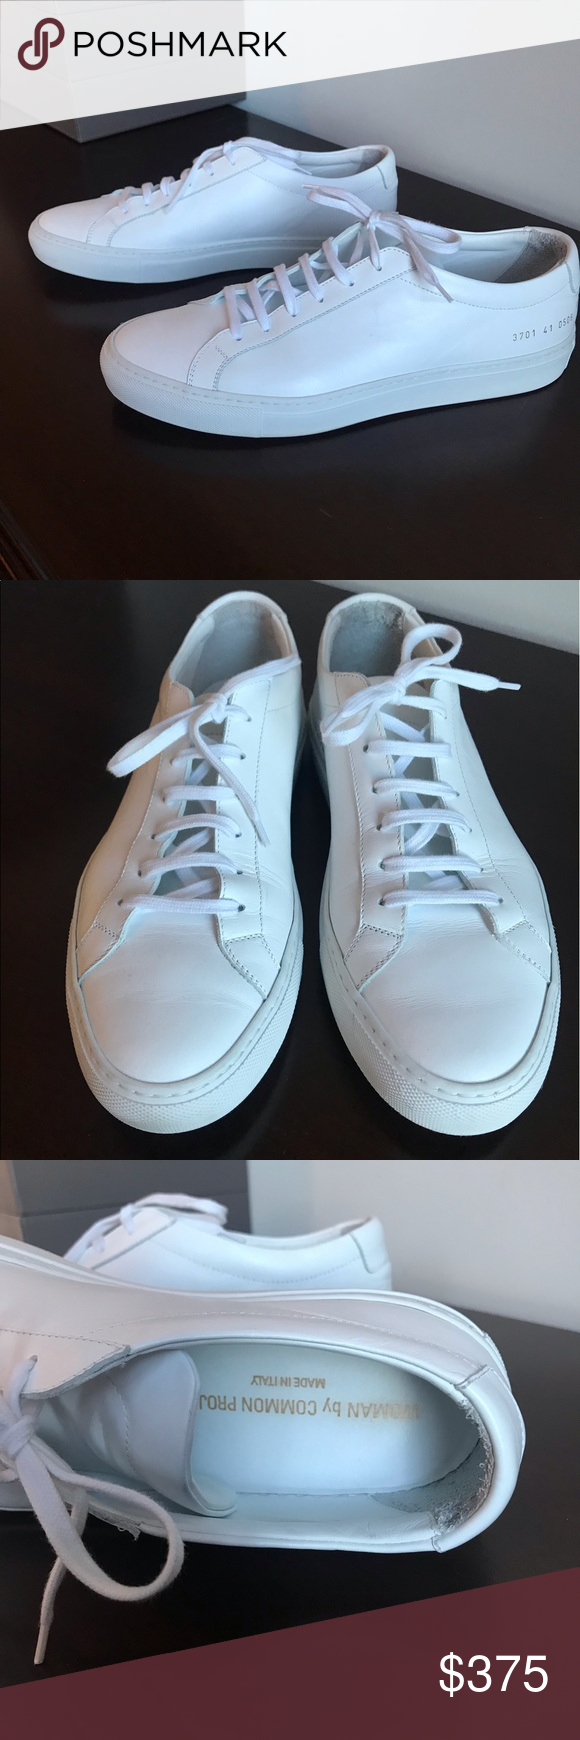 Great condition. White leather Achilles